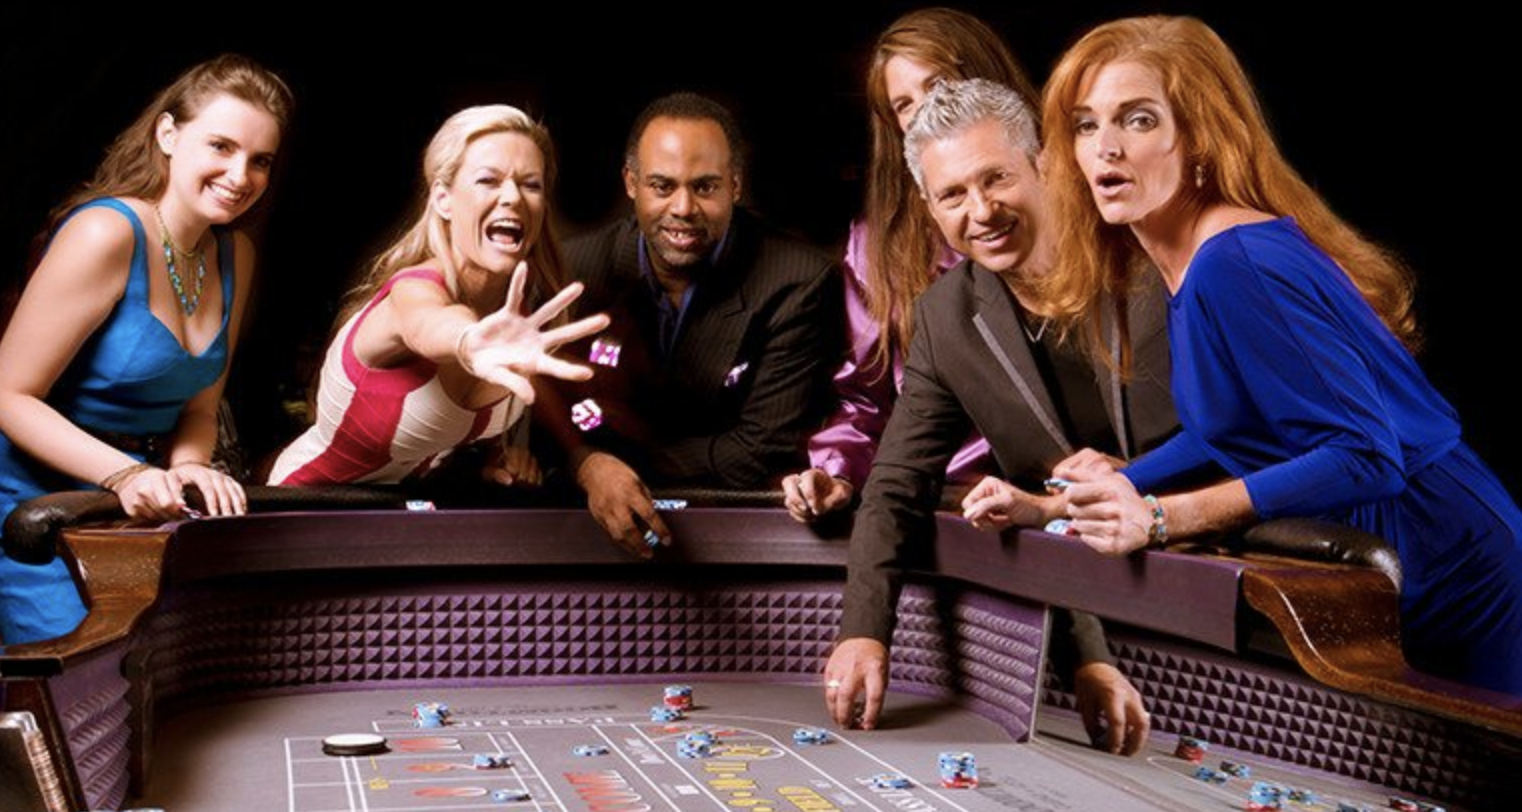 Best Casino Sites UK